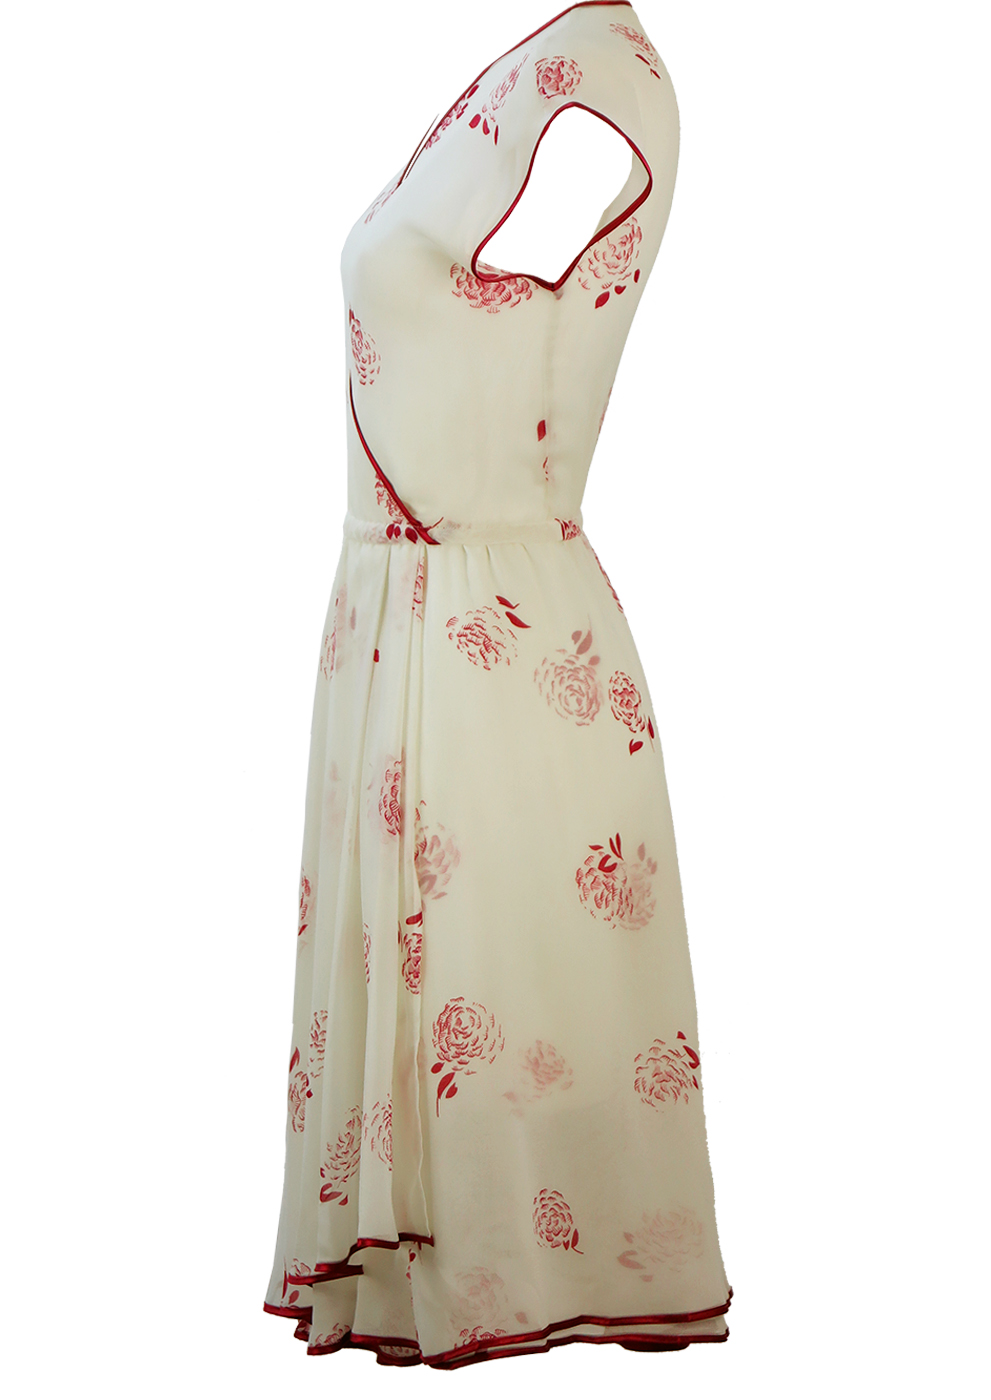 fb5952423d63d Semi Sheer White Floaty Midi Dress with Burgundy Floral Design & Layered  Skirt – M. Semi Sheer White Floaty Midi Dress with Burgundy Floral Design &  Layered ...